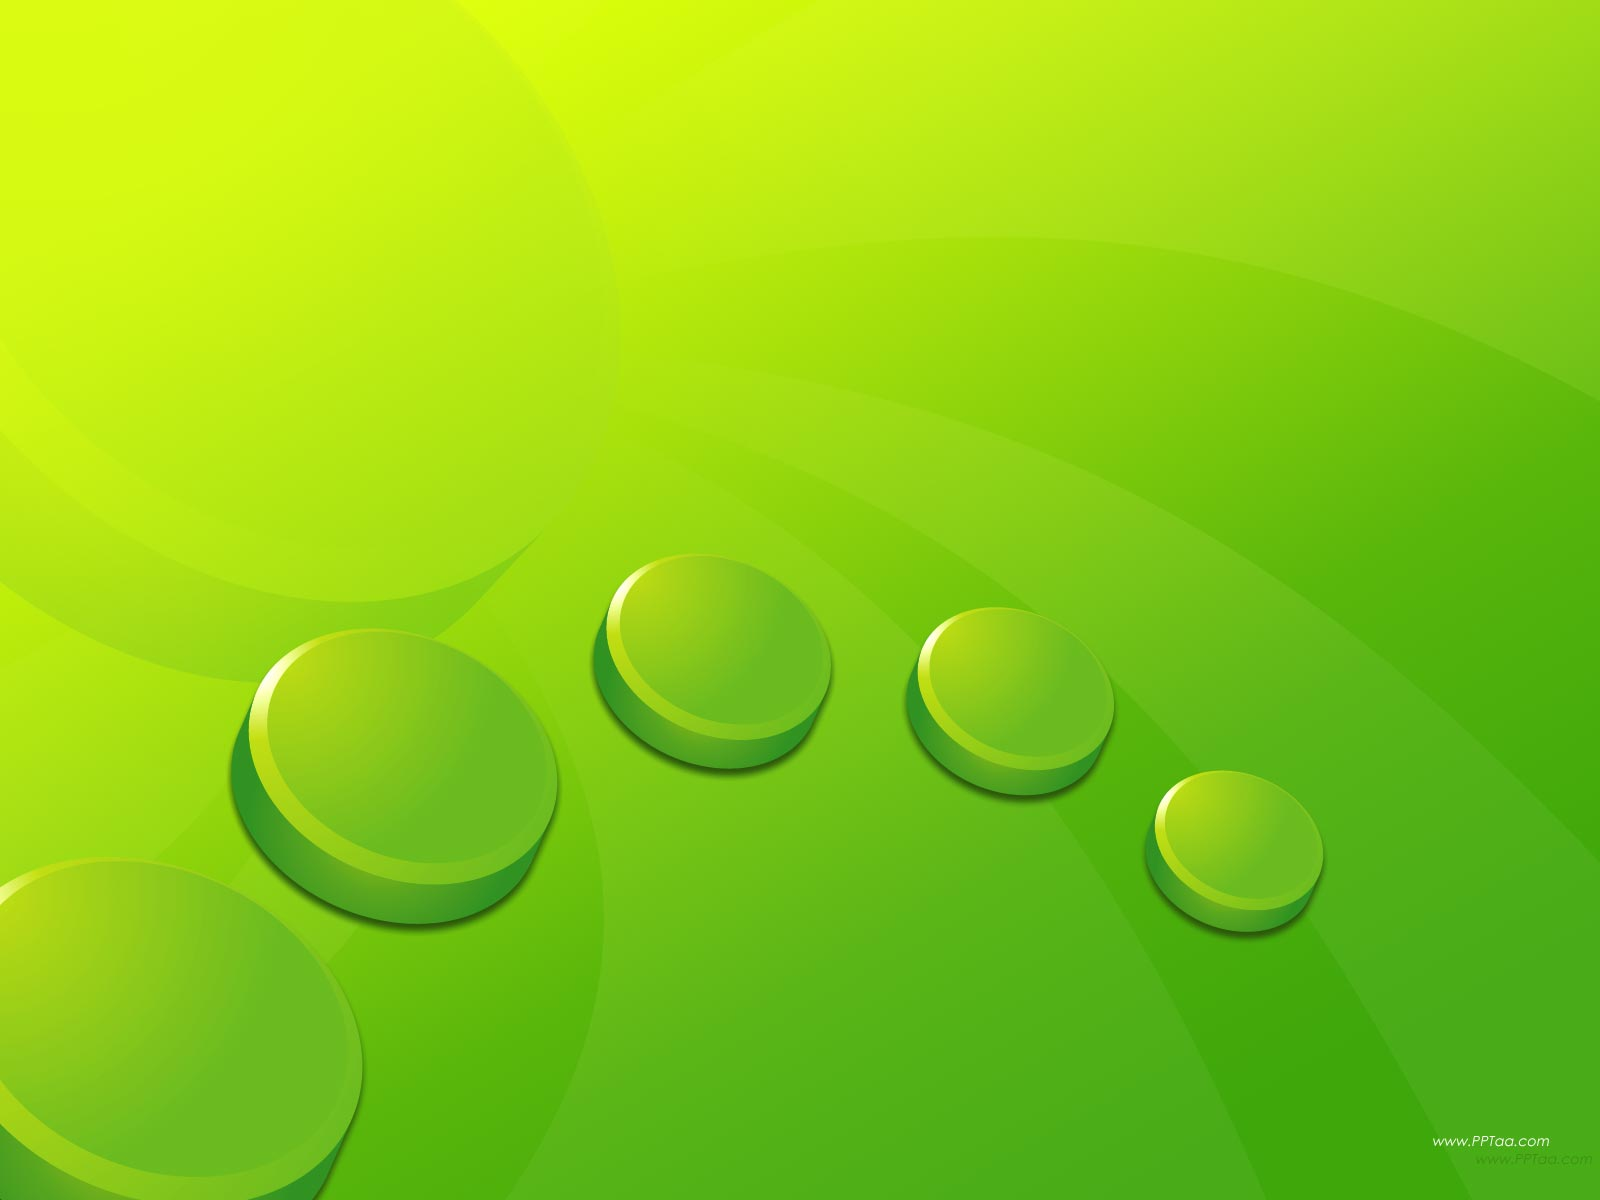 http://2.bp.blogspot.com/-aAXH6IYEW3Y/UF1TQqWFHlI/AAAAAAAAAQE/v8WPWrYew7Q/s1600/green-circles-wallpapers-backgrounds-for-powerpoint.jpg